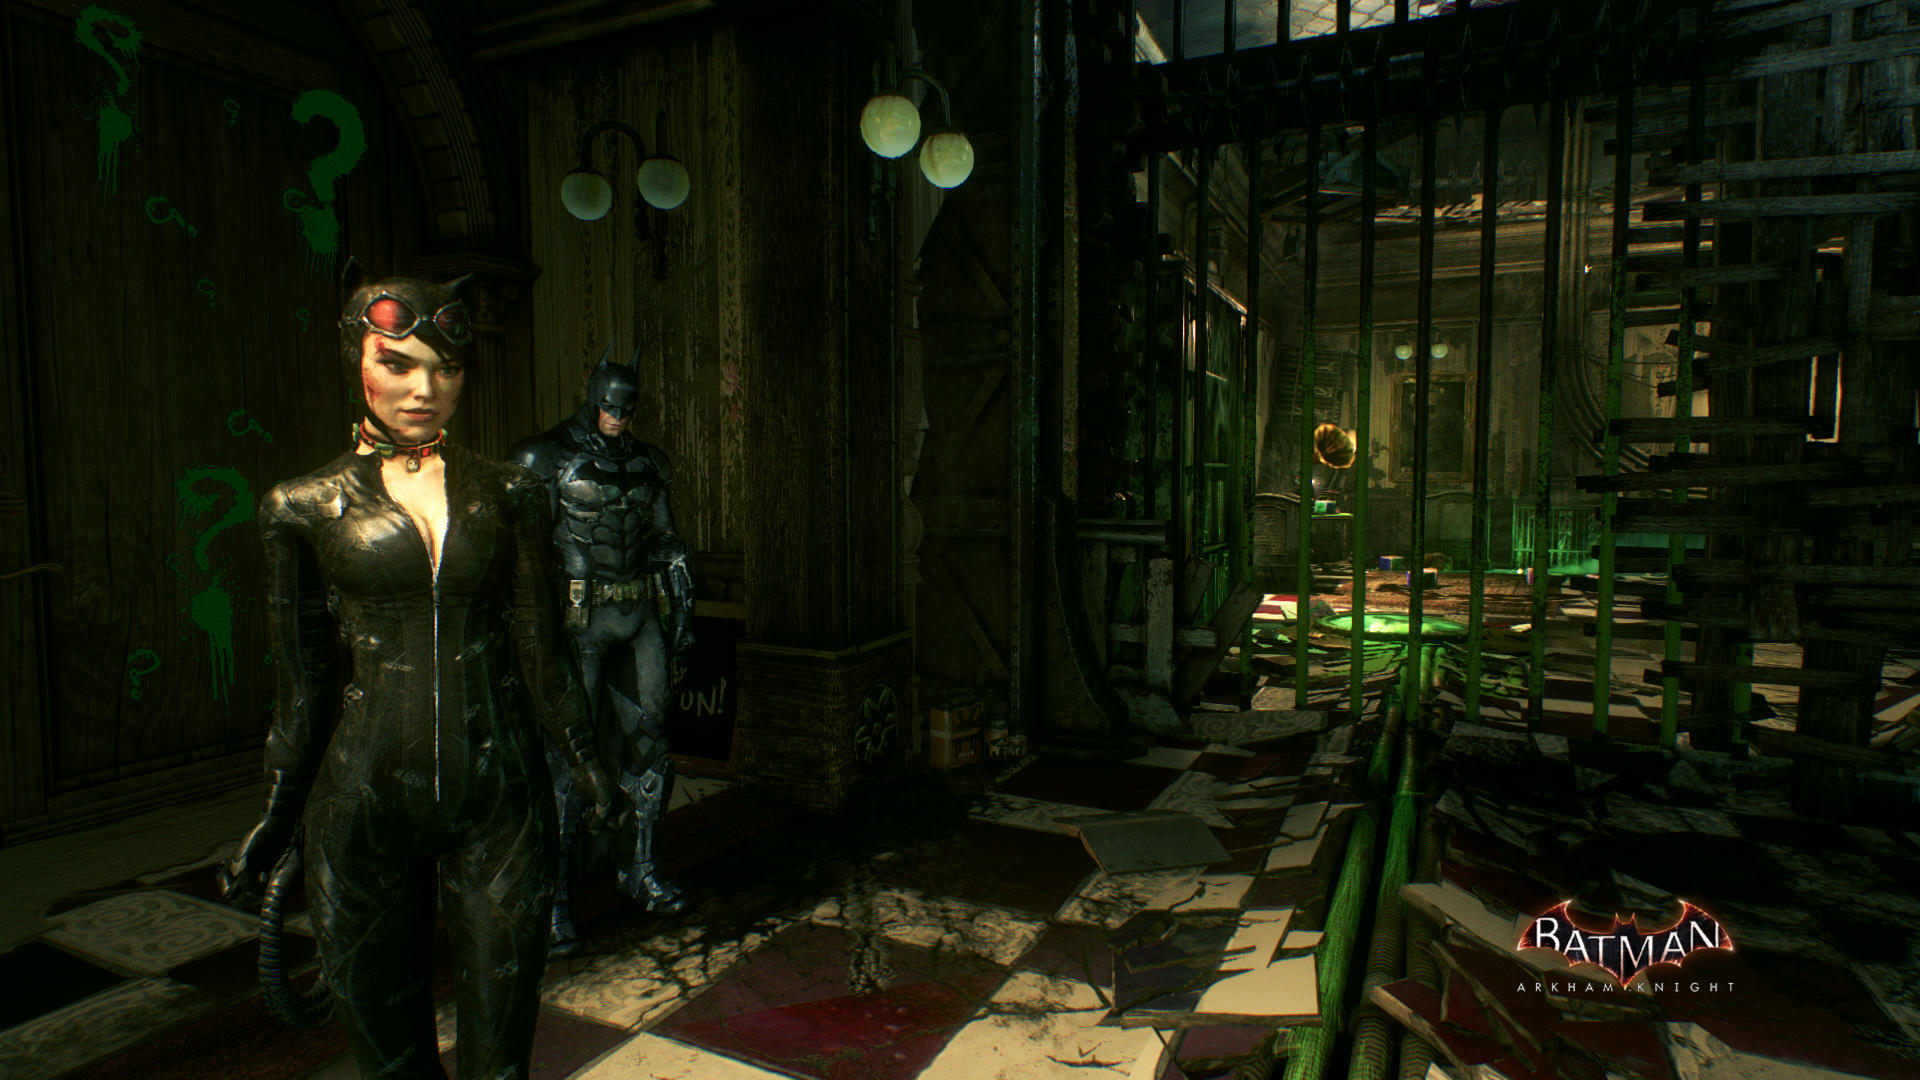 Batman and Catwoman together